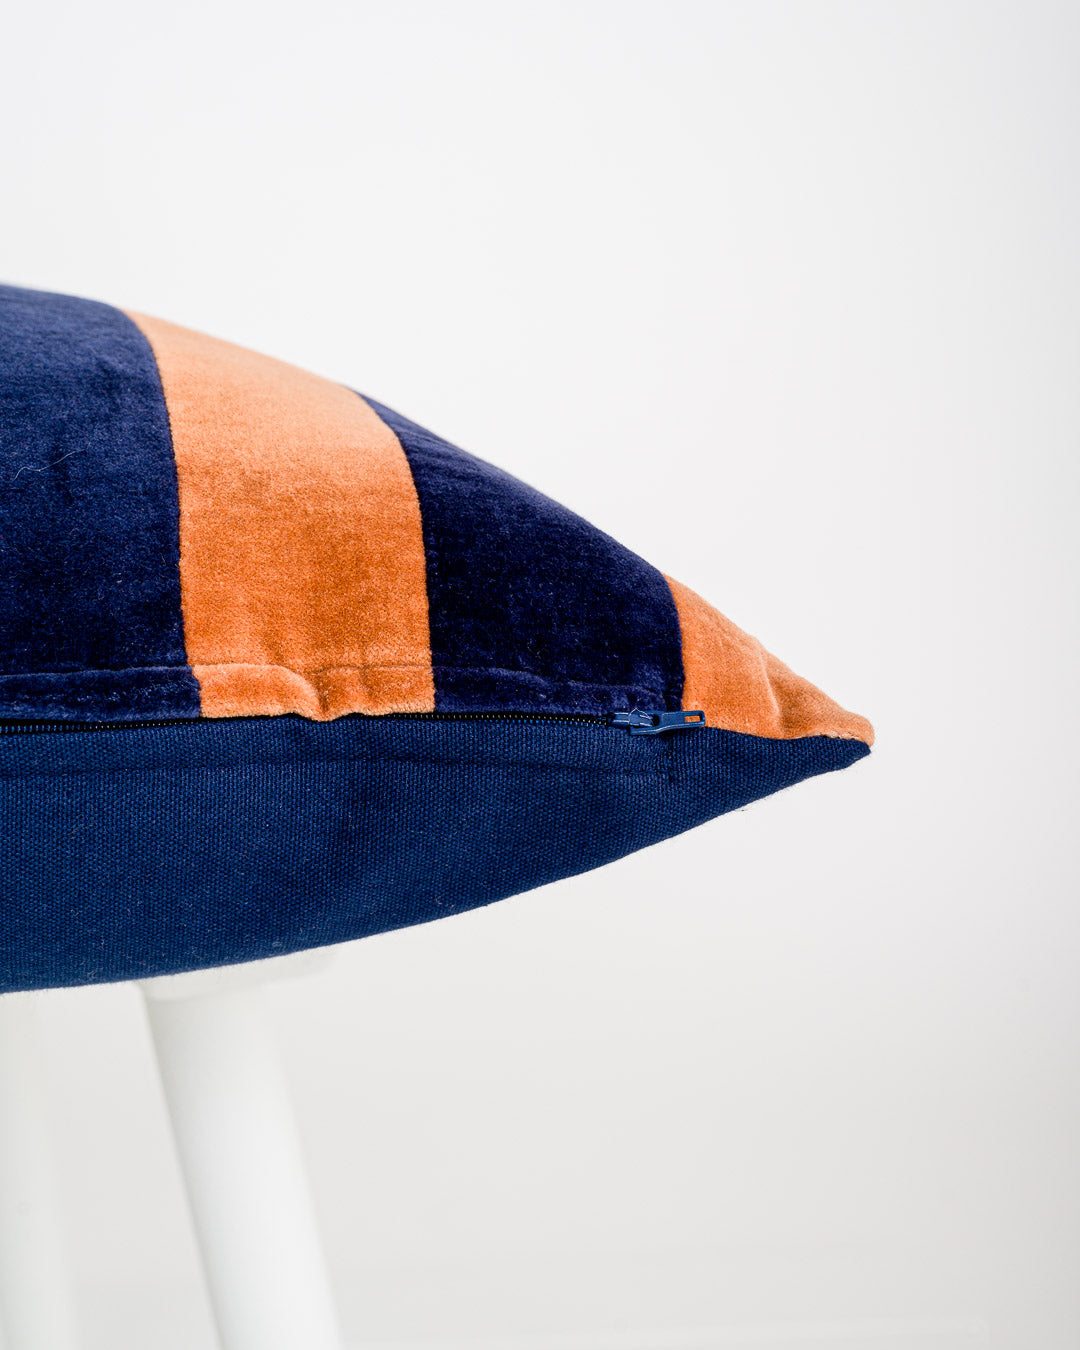 HKliving // Striped Velvet Kissen mit Füllung Blue-Orange